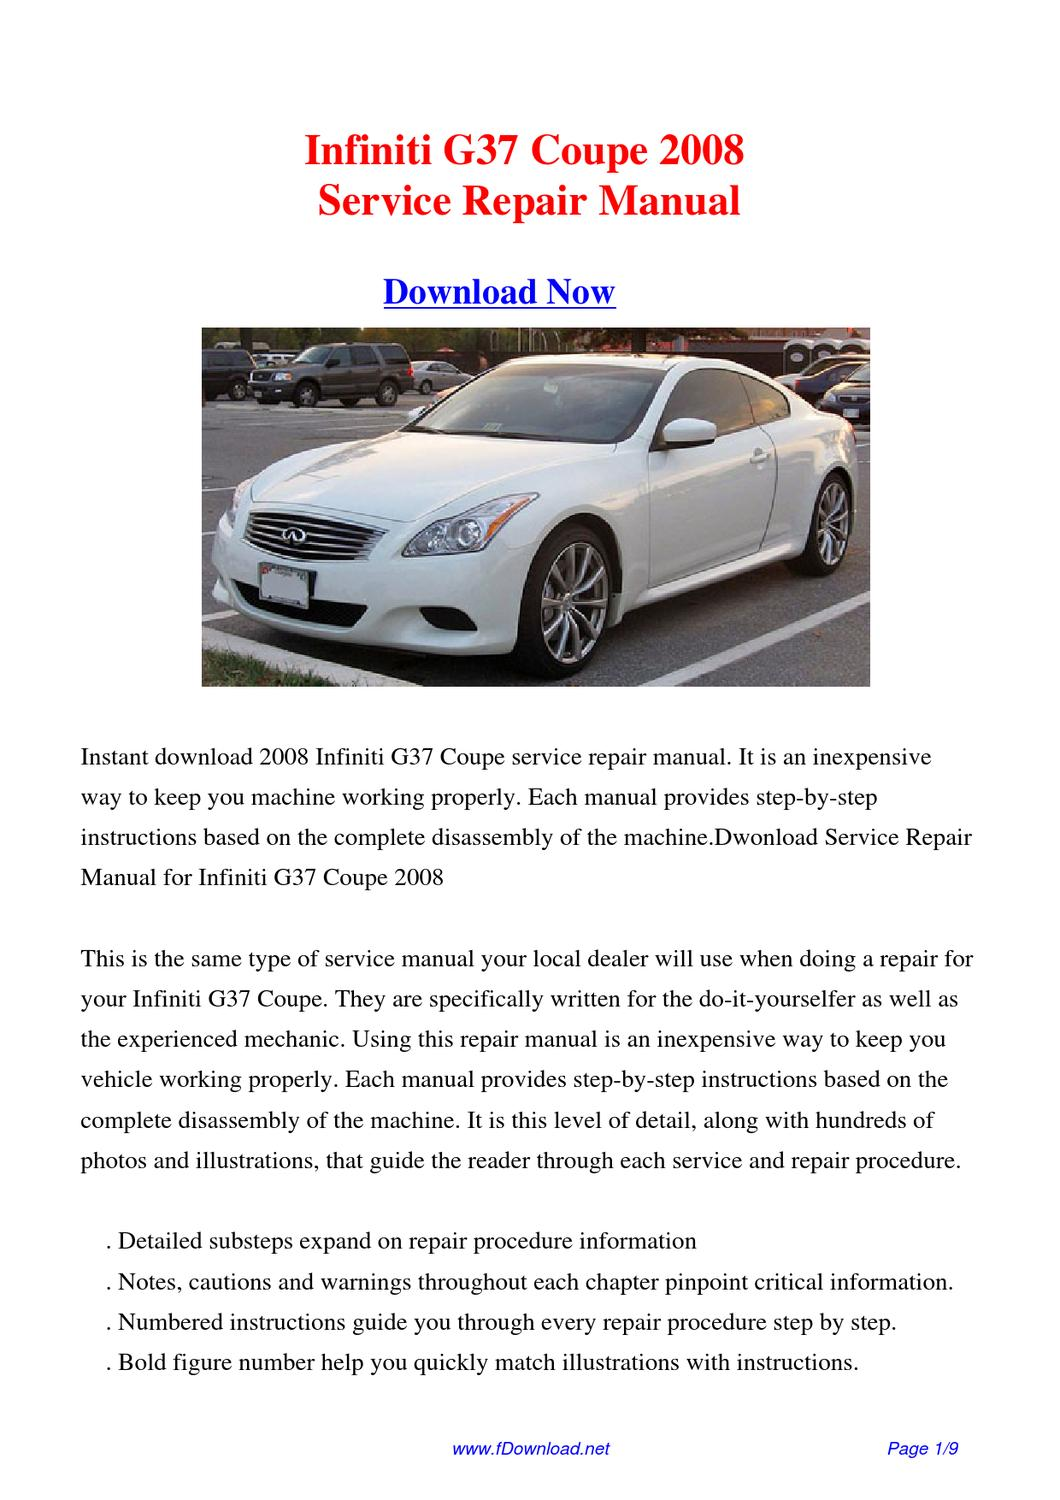 2012 Infiniti G37 Coupe Photos Manual Guide